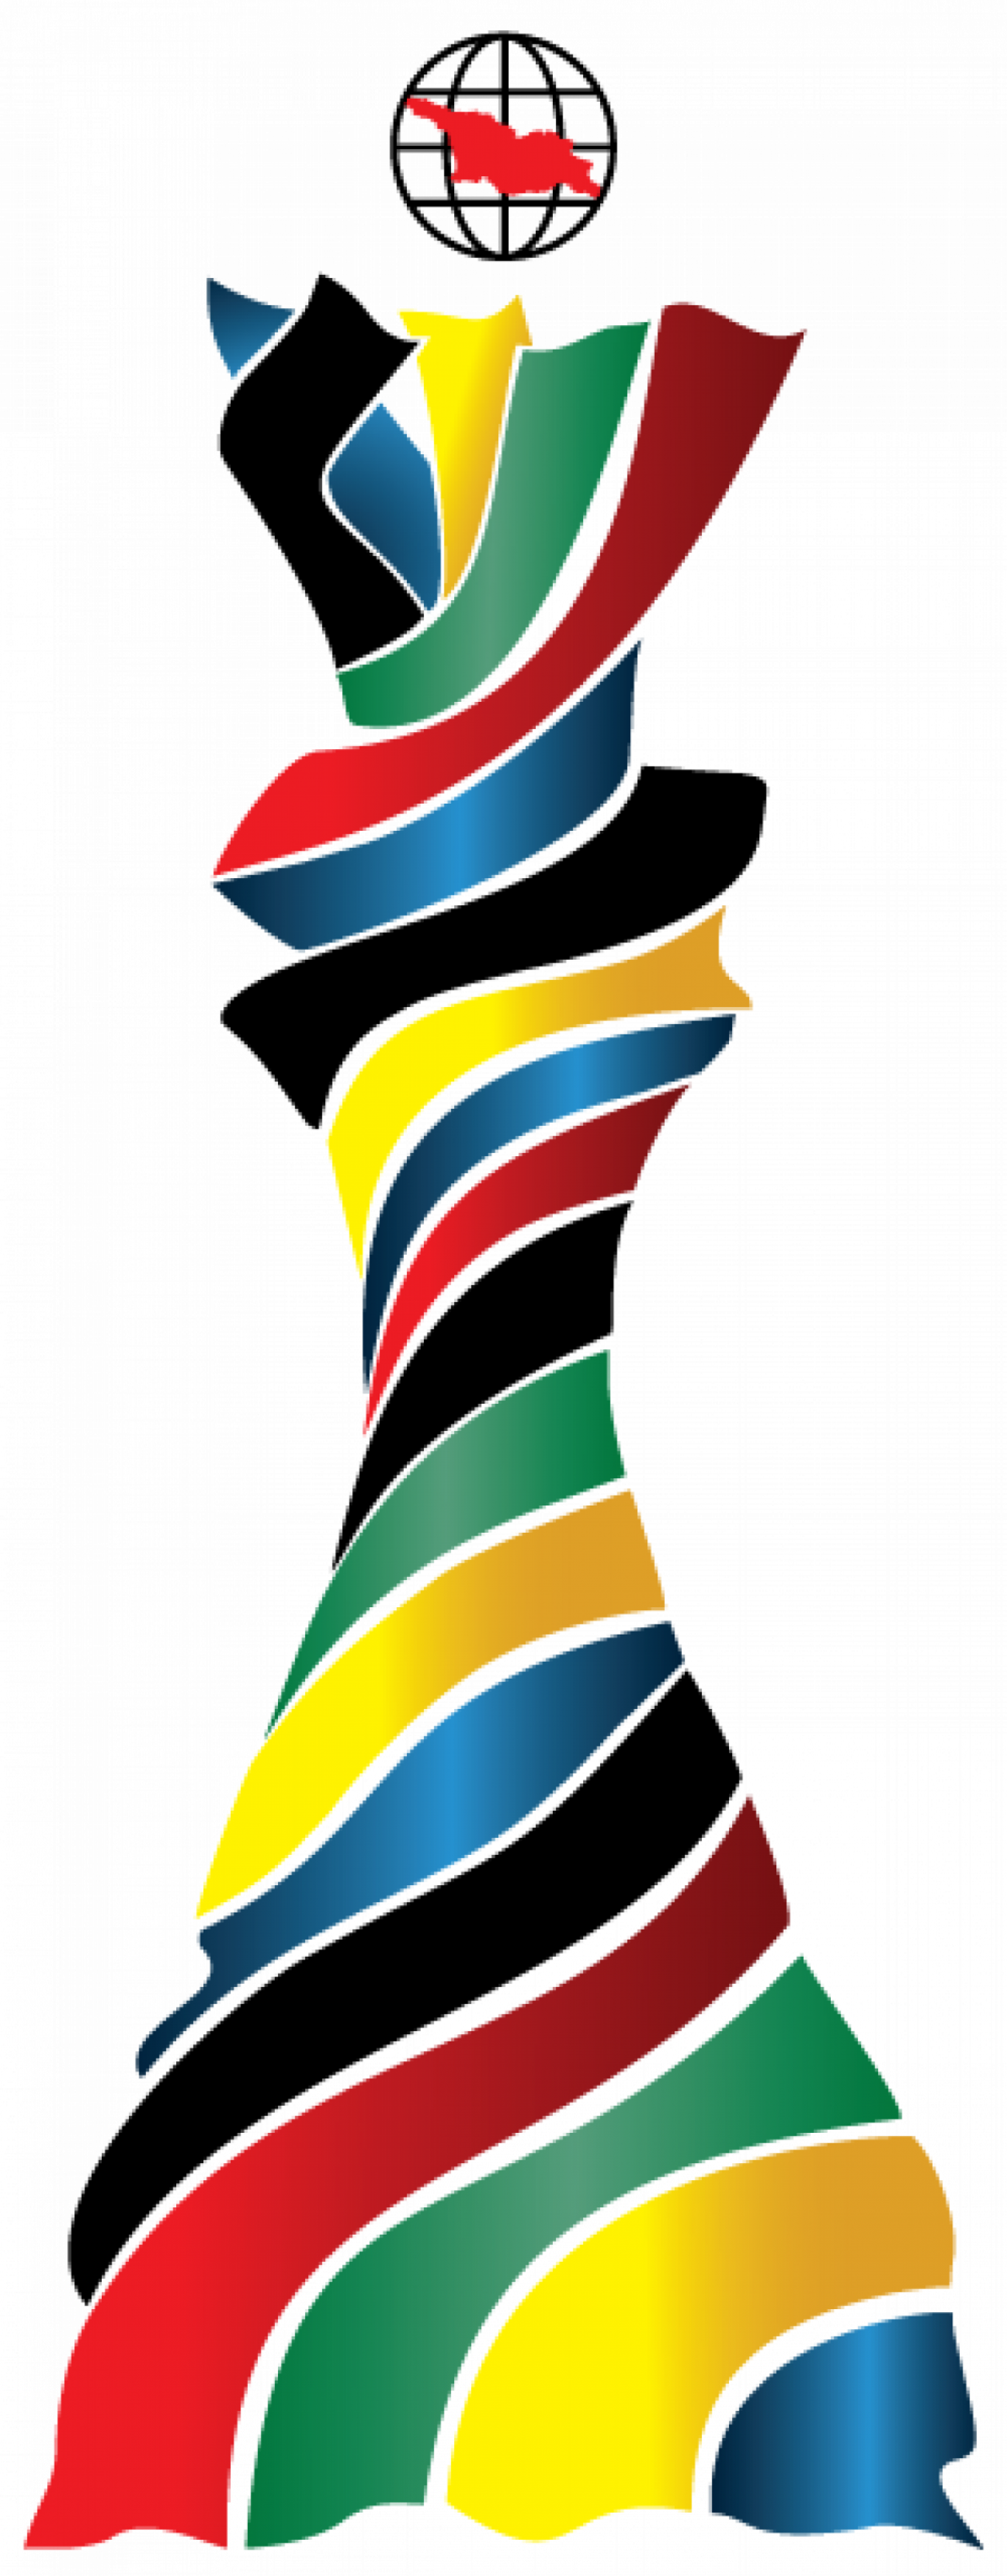 Planeten clipart moving picture. About olympiad the rd